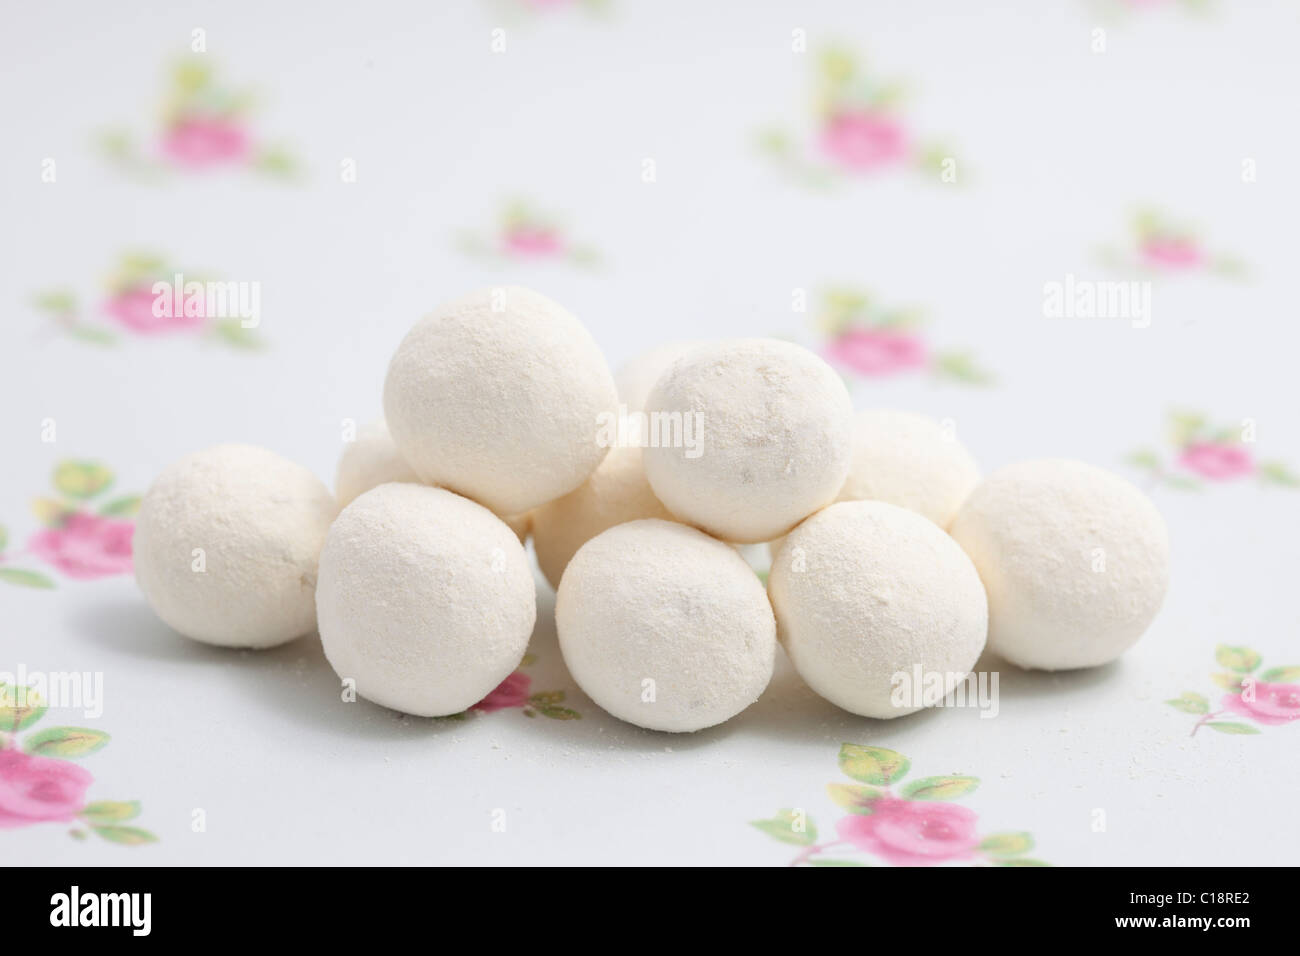 lemon bonbons sweets and candy on a paper background photographed in a studio - Stock Image